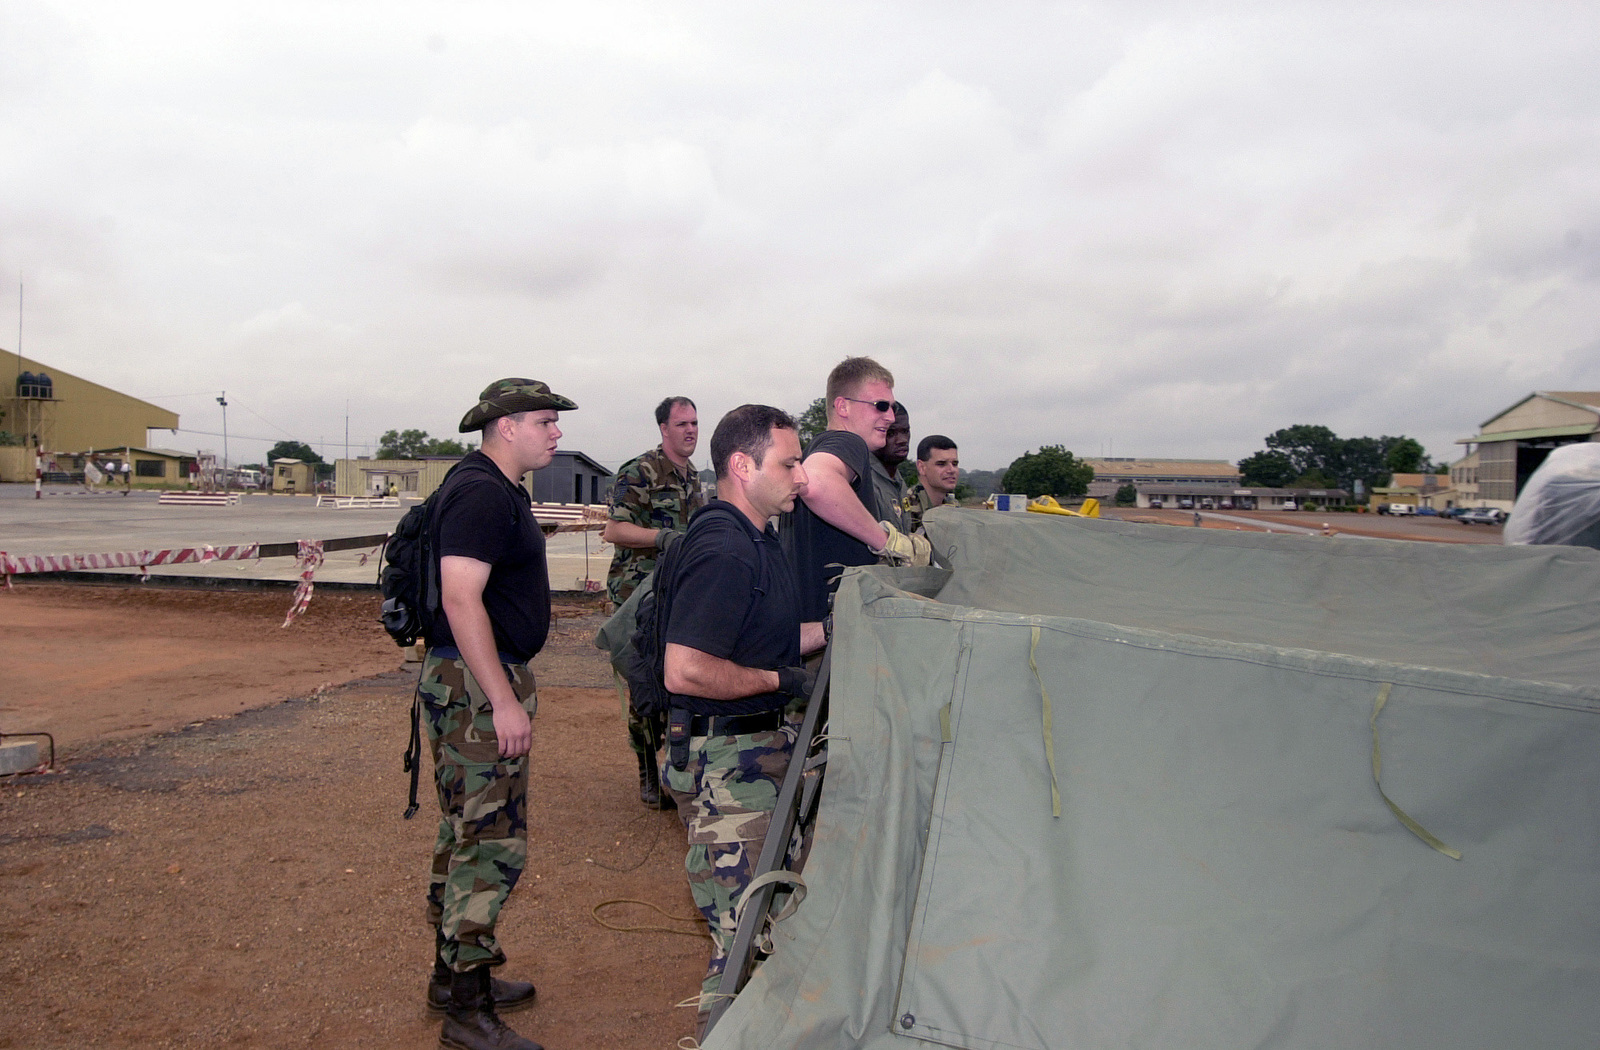 Troops from the 86th Contingency Response Group (CRG), Ramstein Air Base, Germany, assemble a tent at an airfield in Accra, Ghana, in preparation to transport US forces and cargo connected with Operation FOCUS RELIEF. Operation FOCUS RELIEF, a United Nations peacekeeping operation in Sierra Leone, to equip and train seven battalions from West African countries to be able to conduct peace enforcement operations